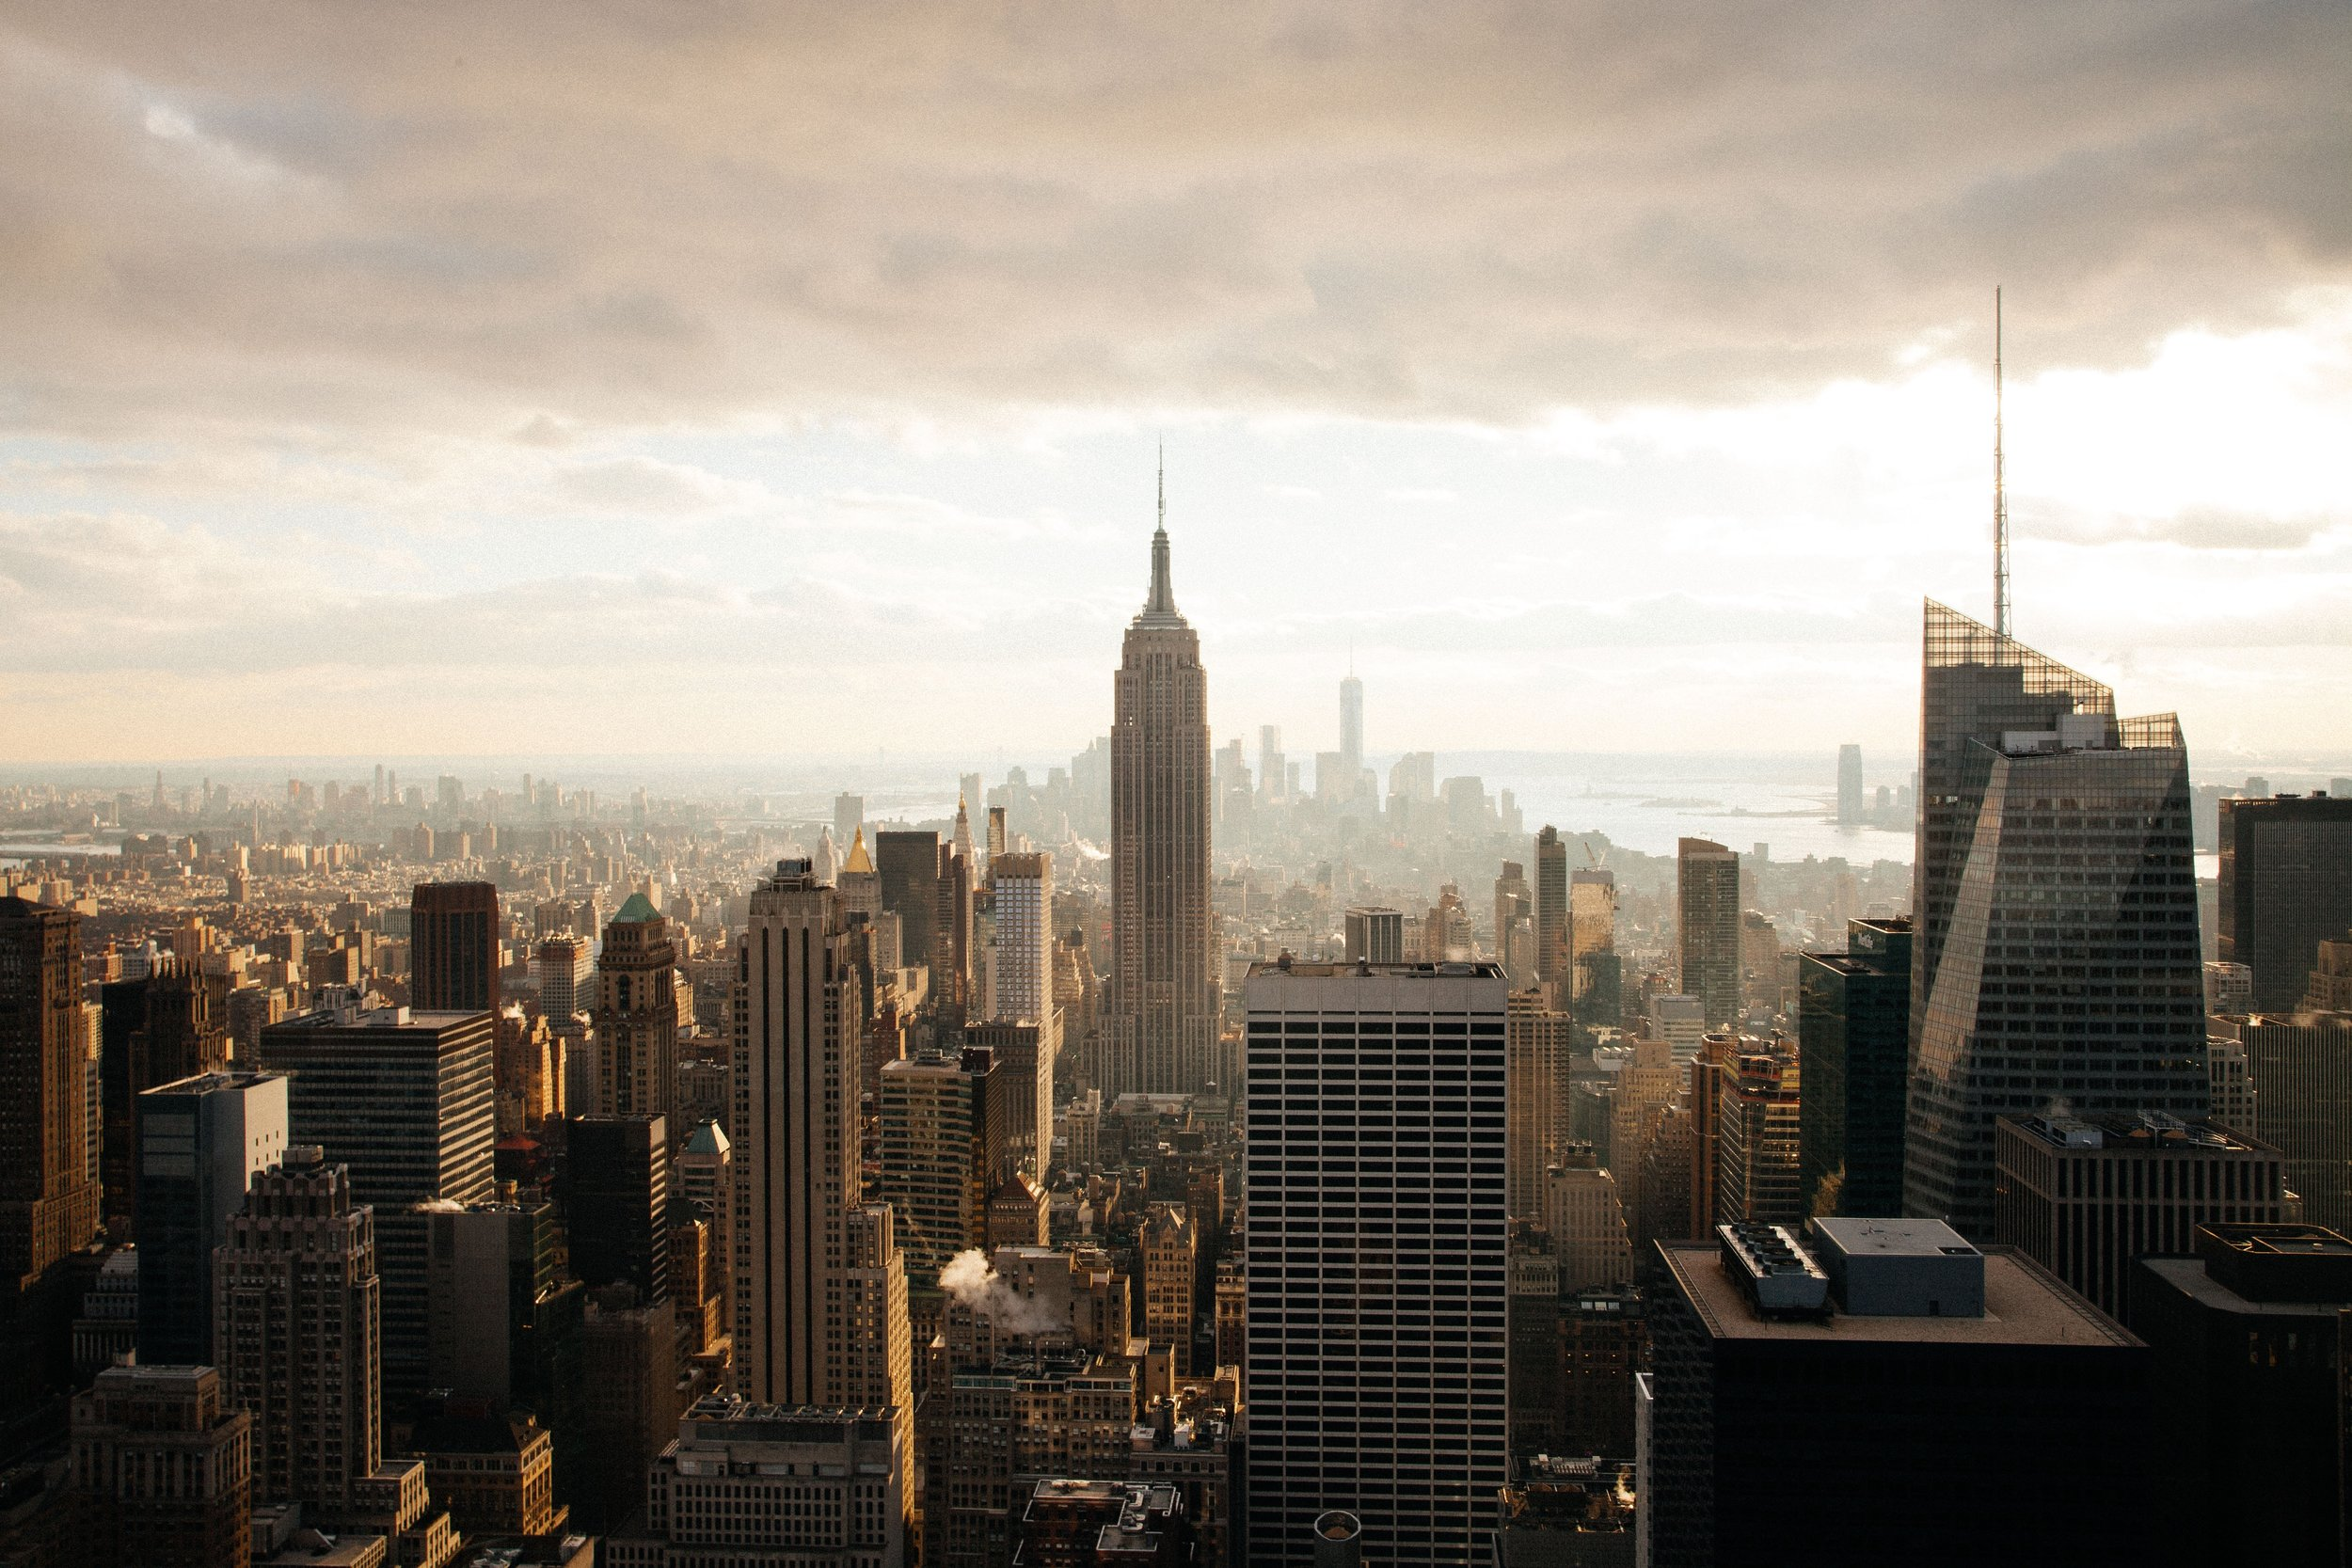 New York skyline.jpg